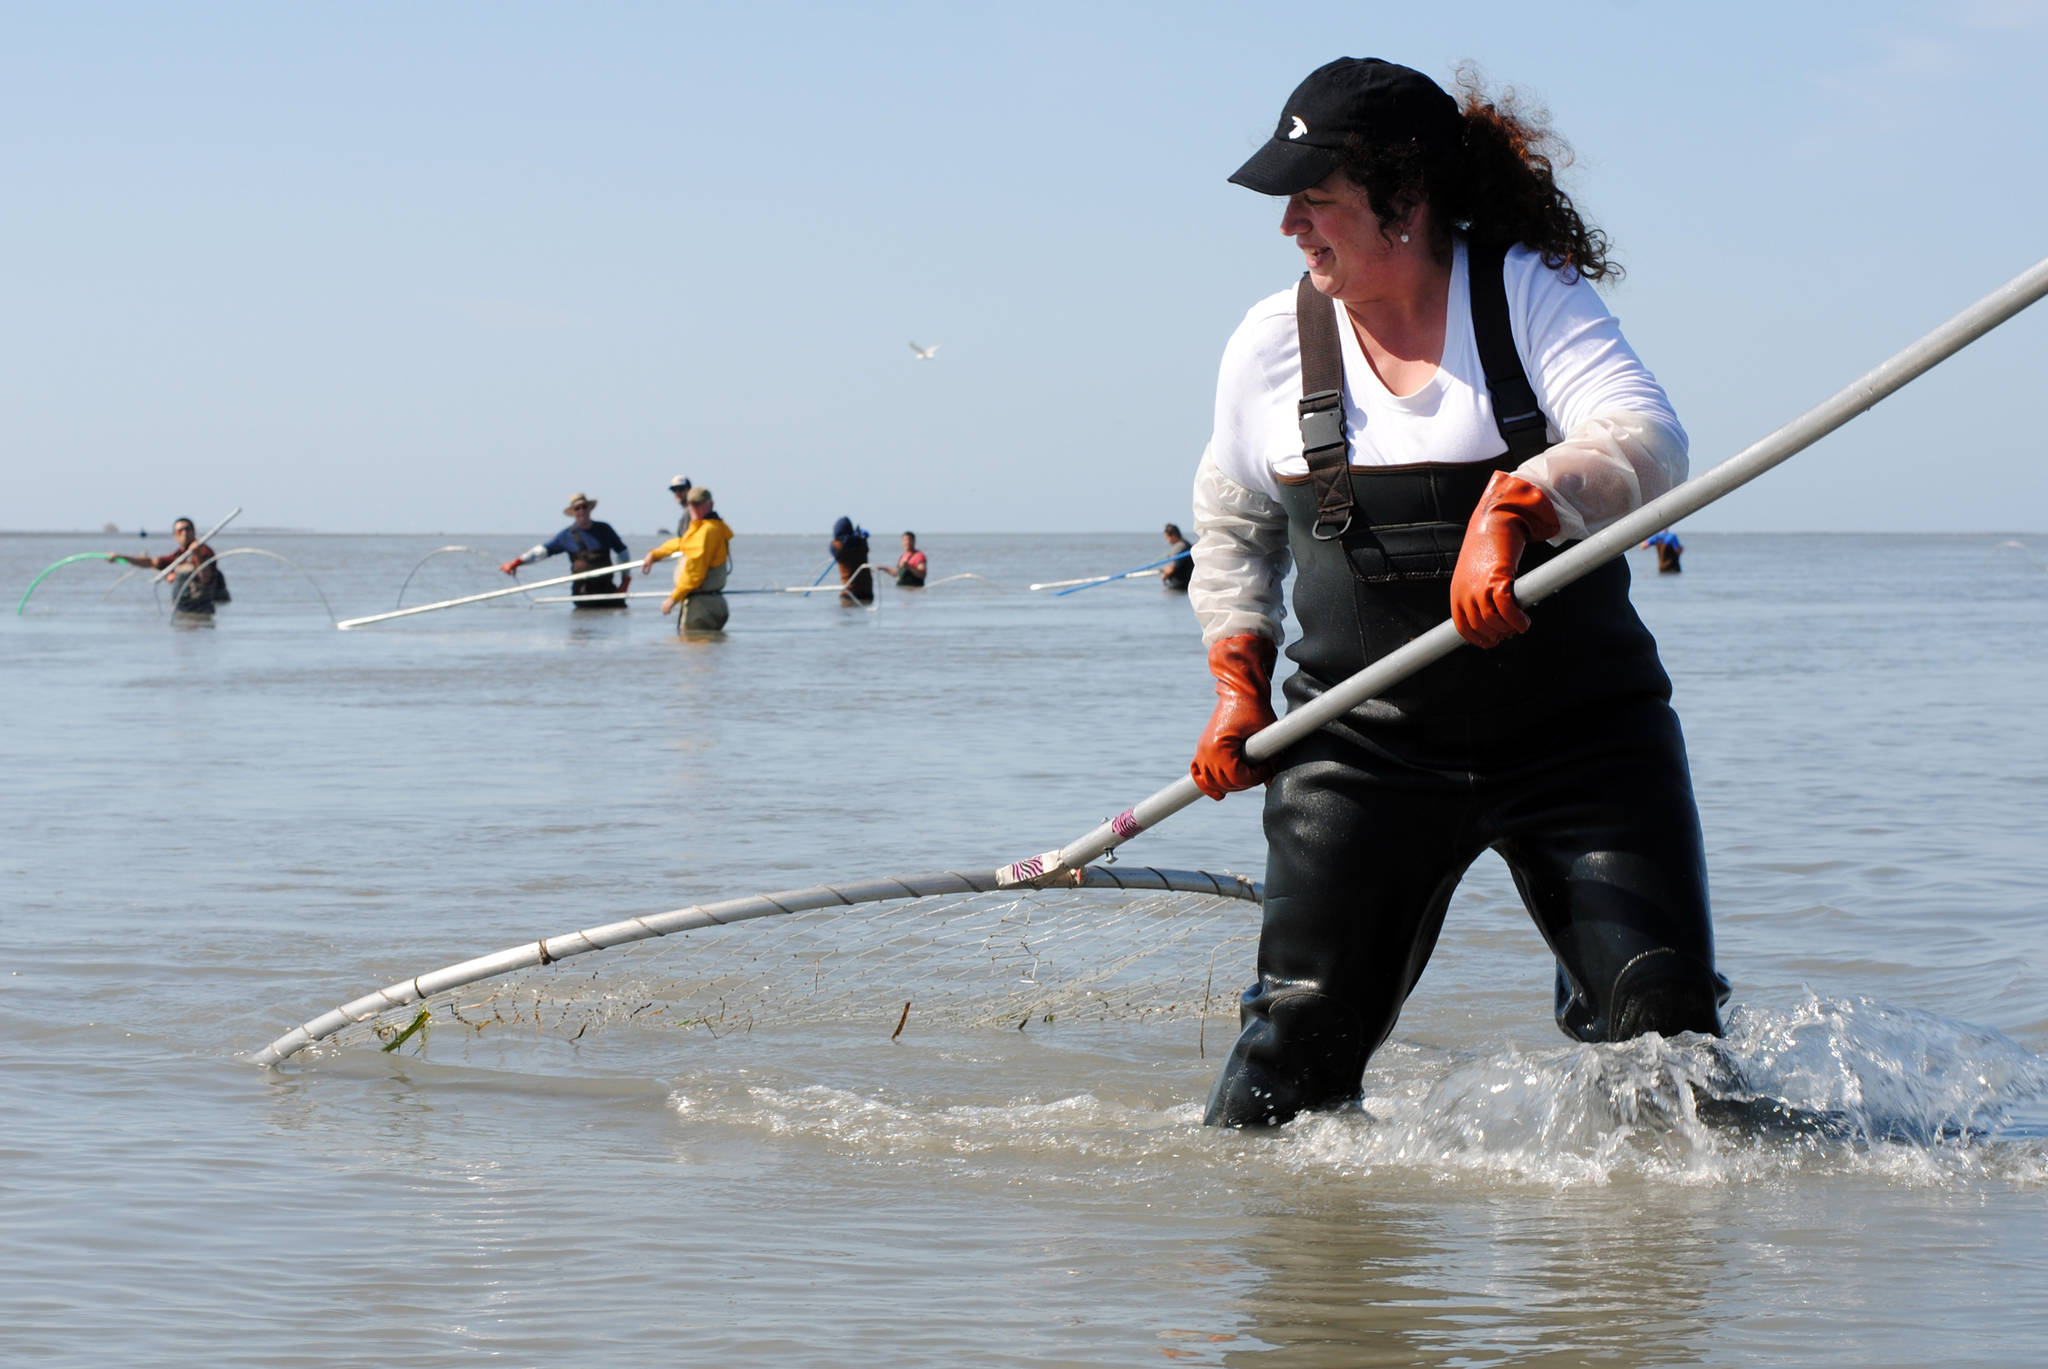 Annie Cromwell of Anchorage brings in a sockeye salmon Sunday, June 23, while dipnetting on the north beach in Kenai, Alaska. (Photo by Kat Sorensen/Peninsula Clarion)